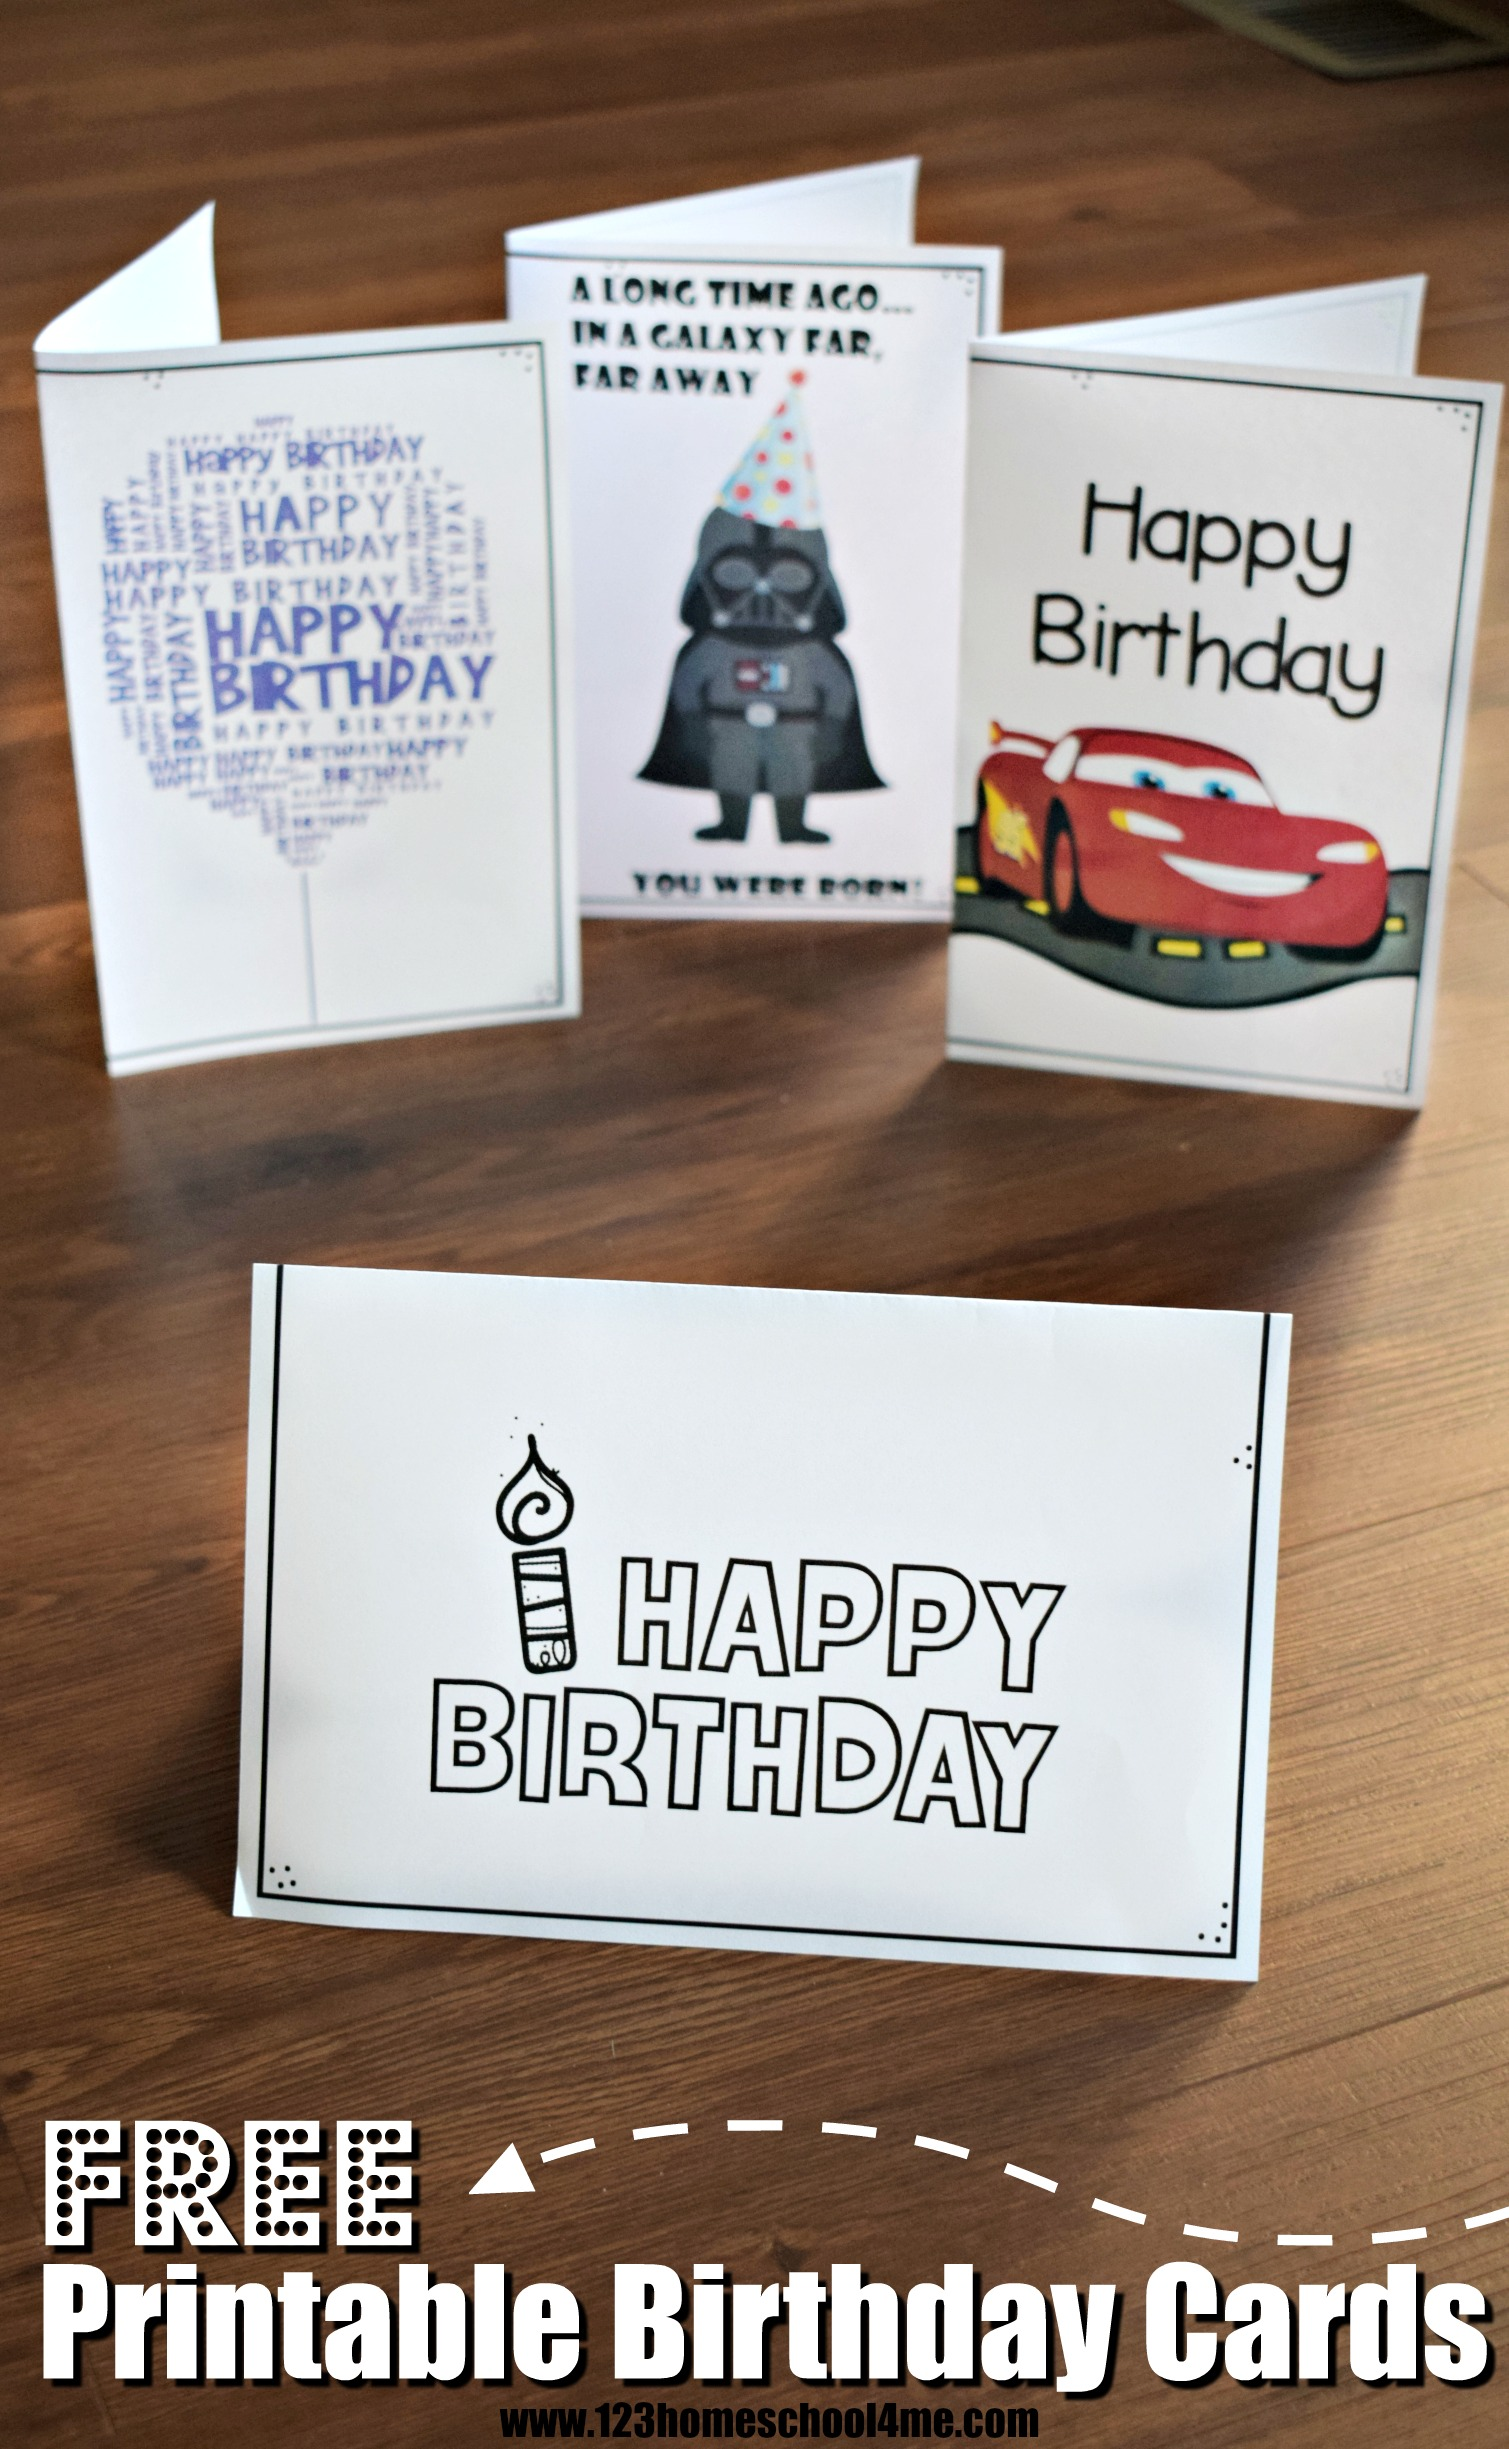 image about Free Printable Birthday Cards for Boys identify Absolutely free Printable Birthday Playing cards 123 Homeschool 4 Me